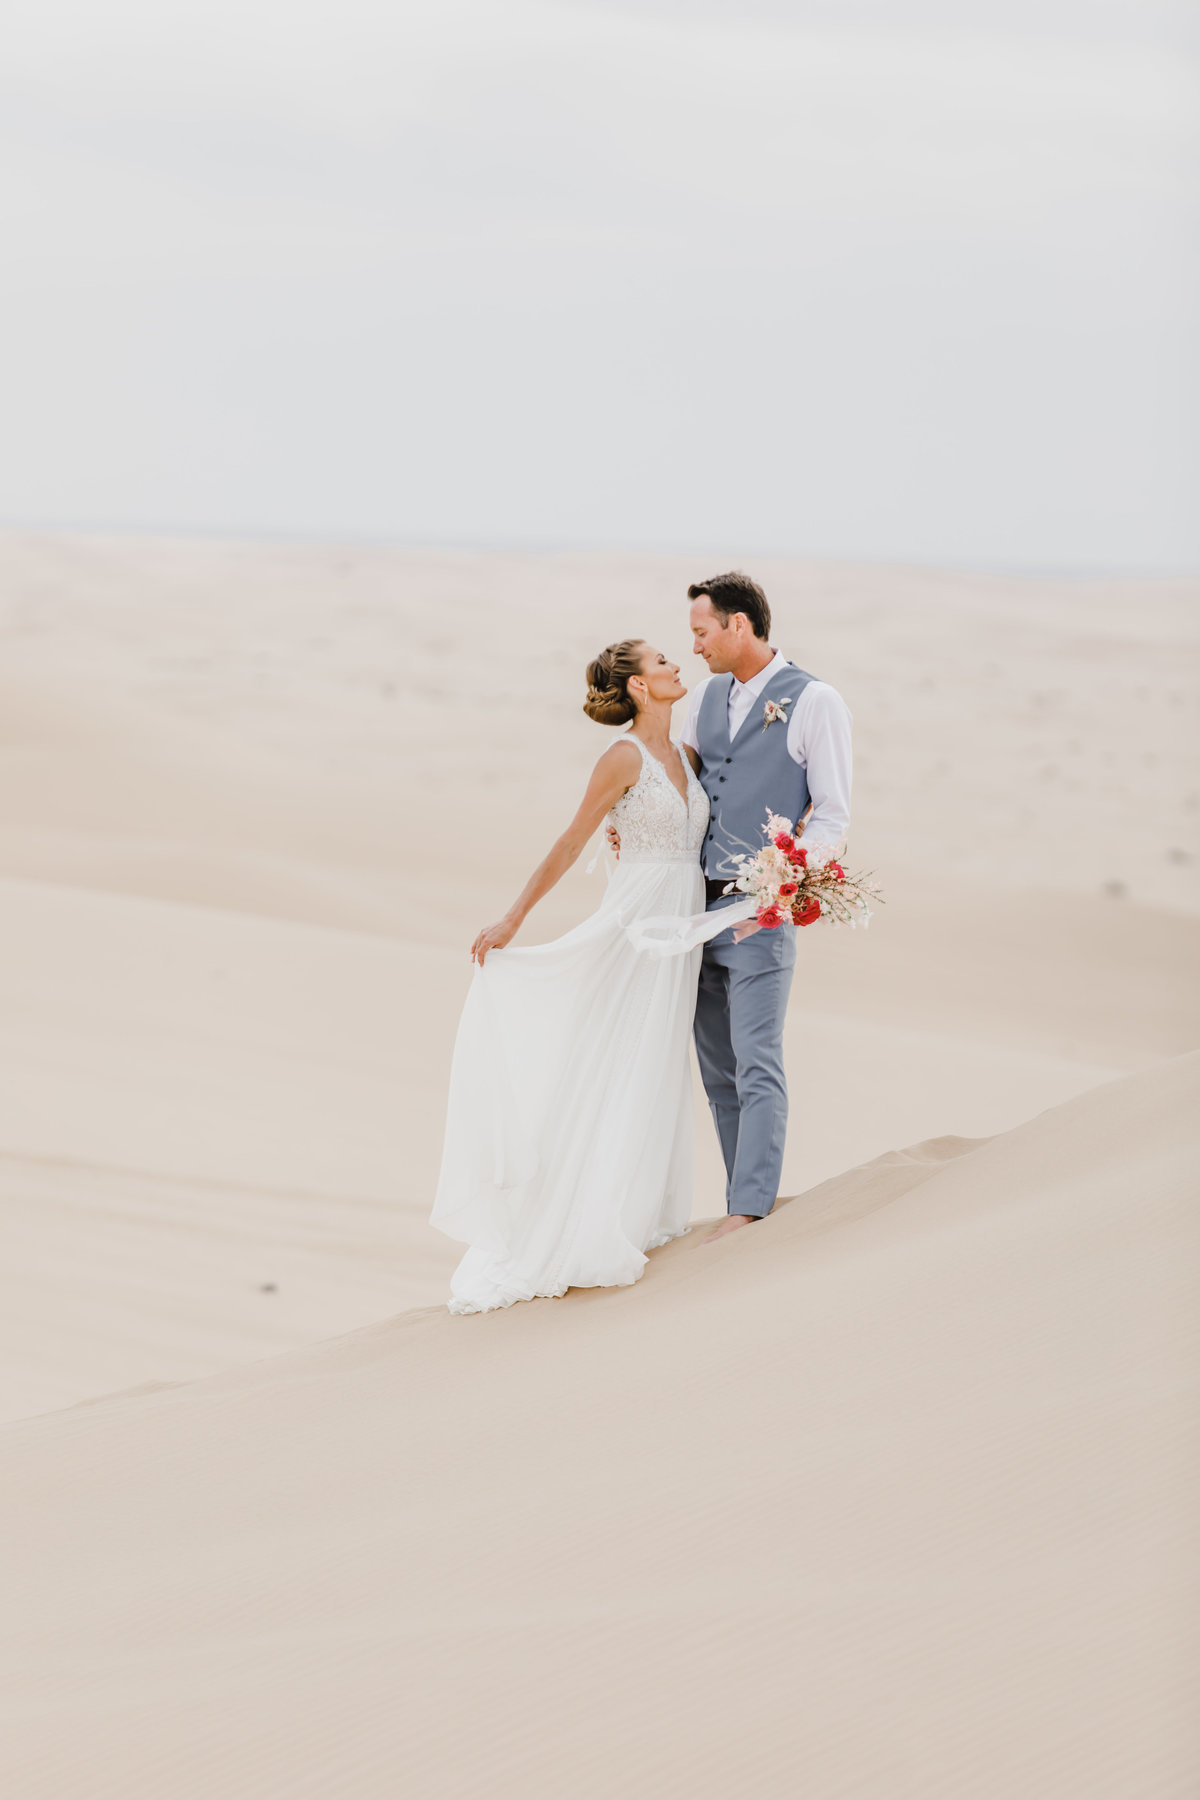 I am a California wedding photographer based in San Diego